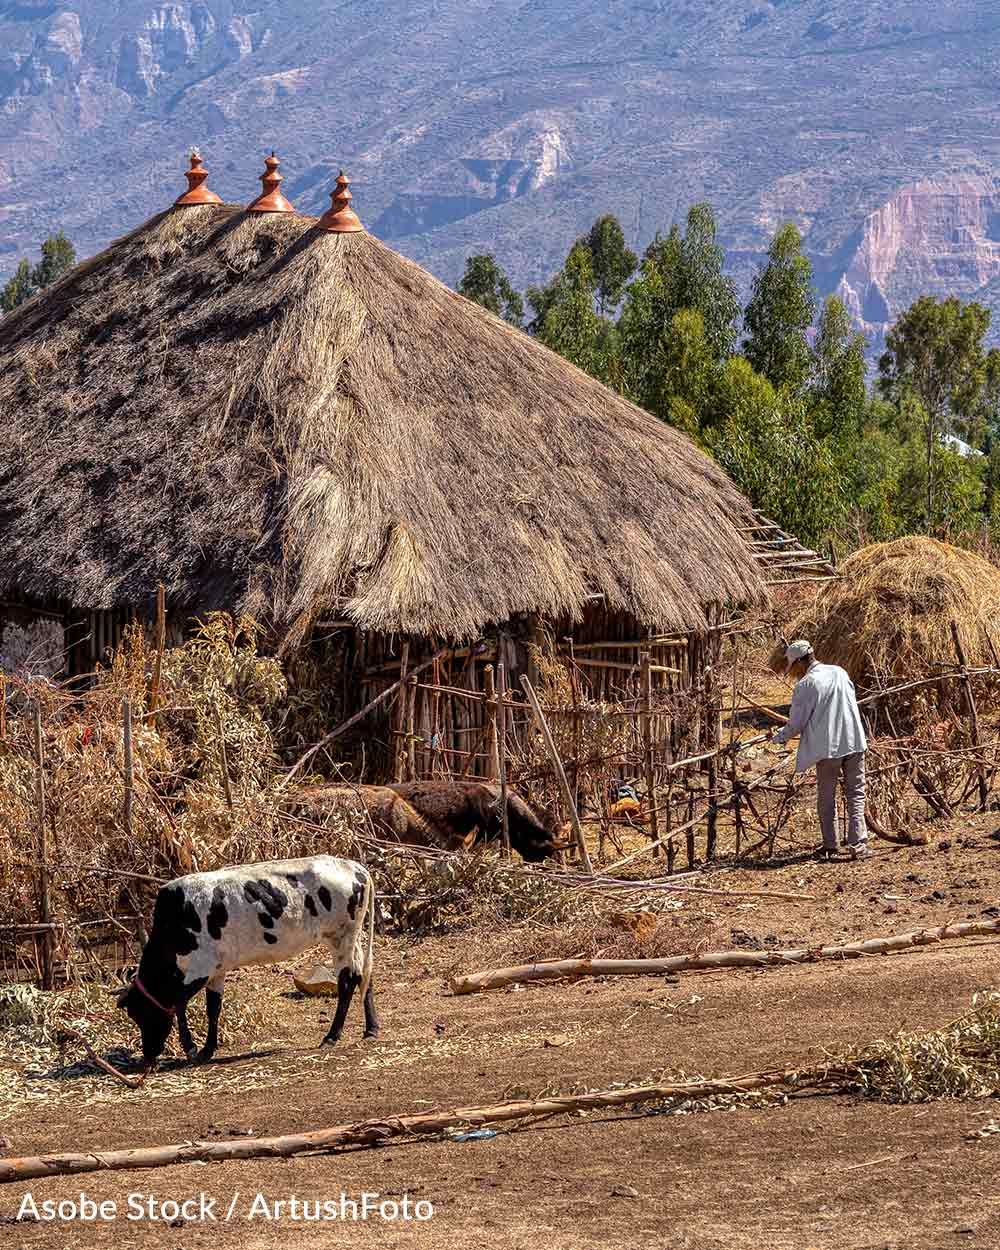 Many in Ethiopia live in extreme poverty.